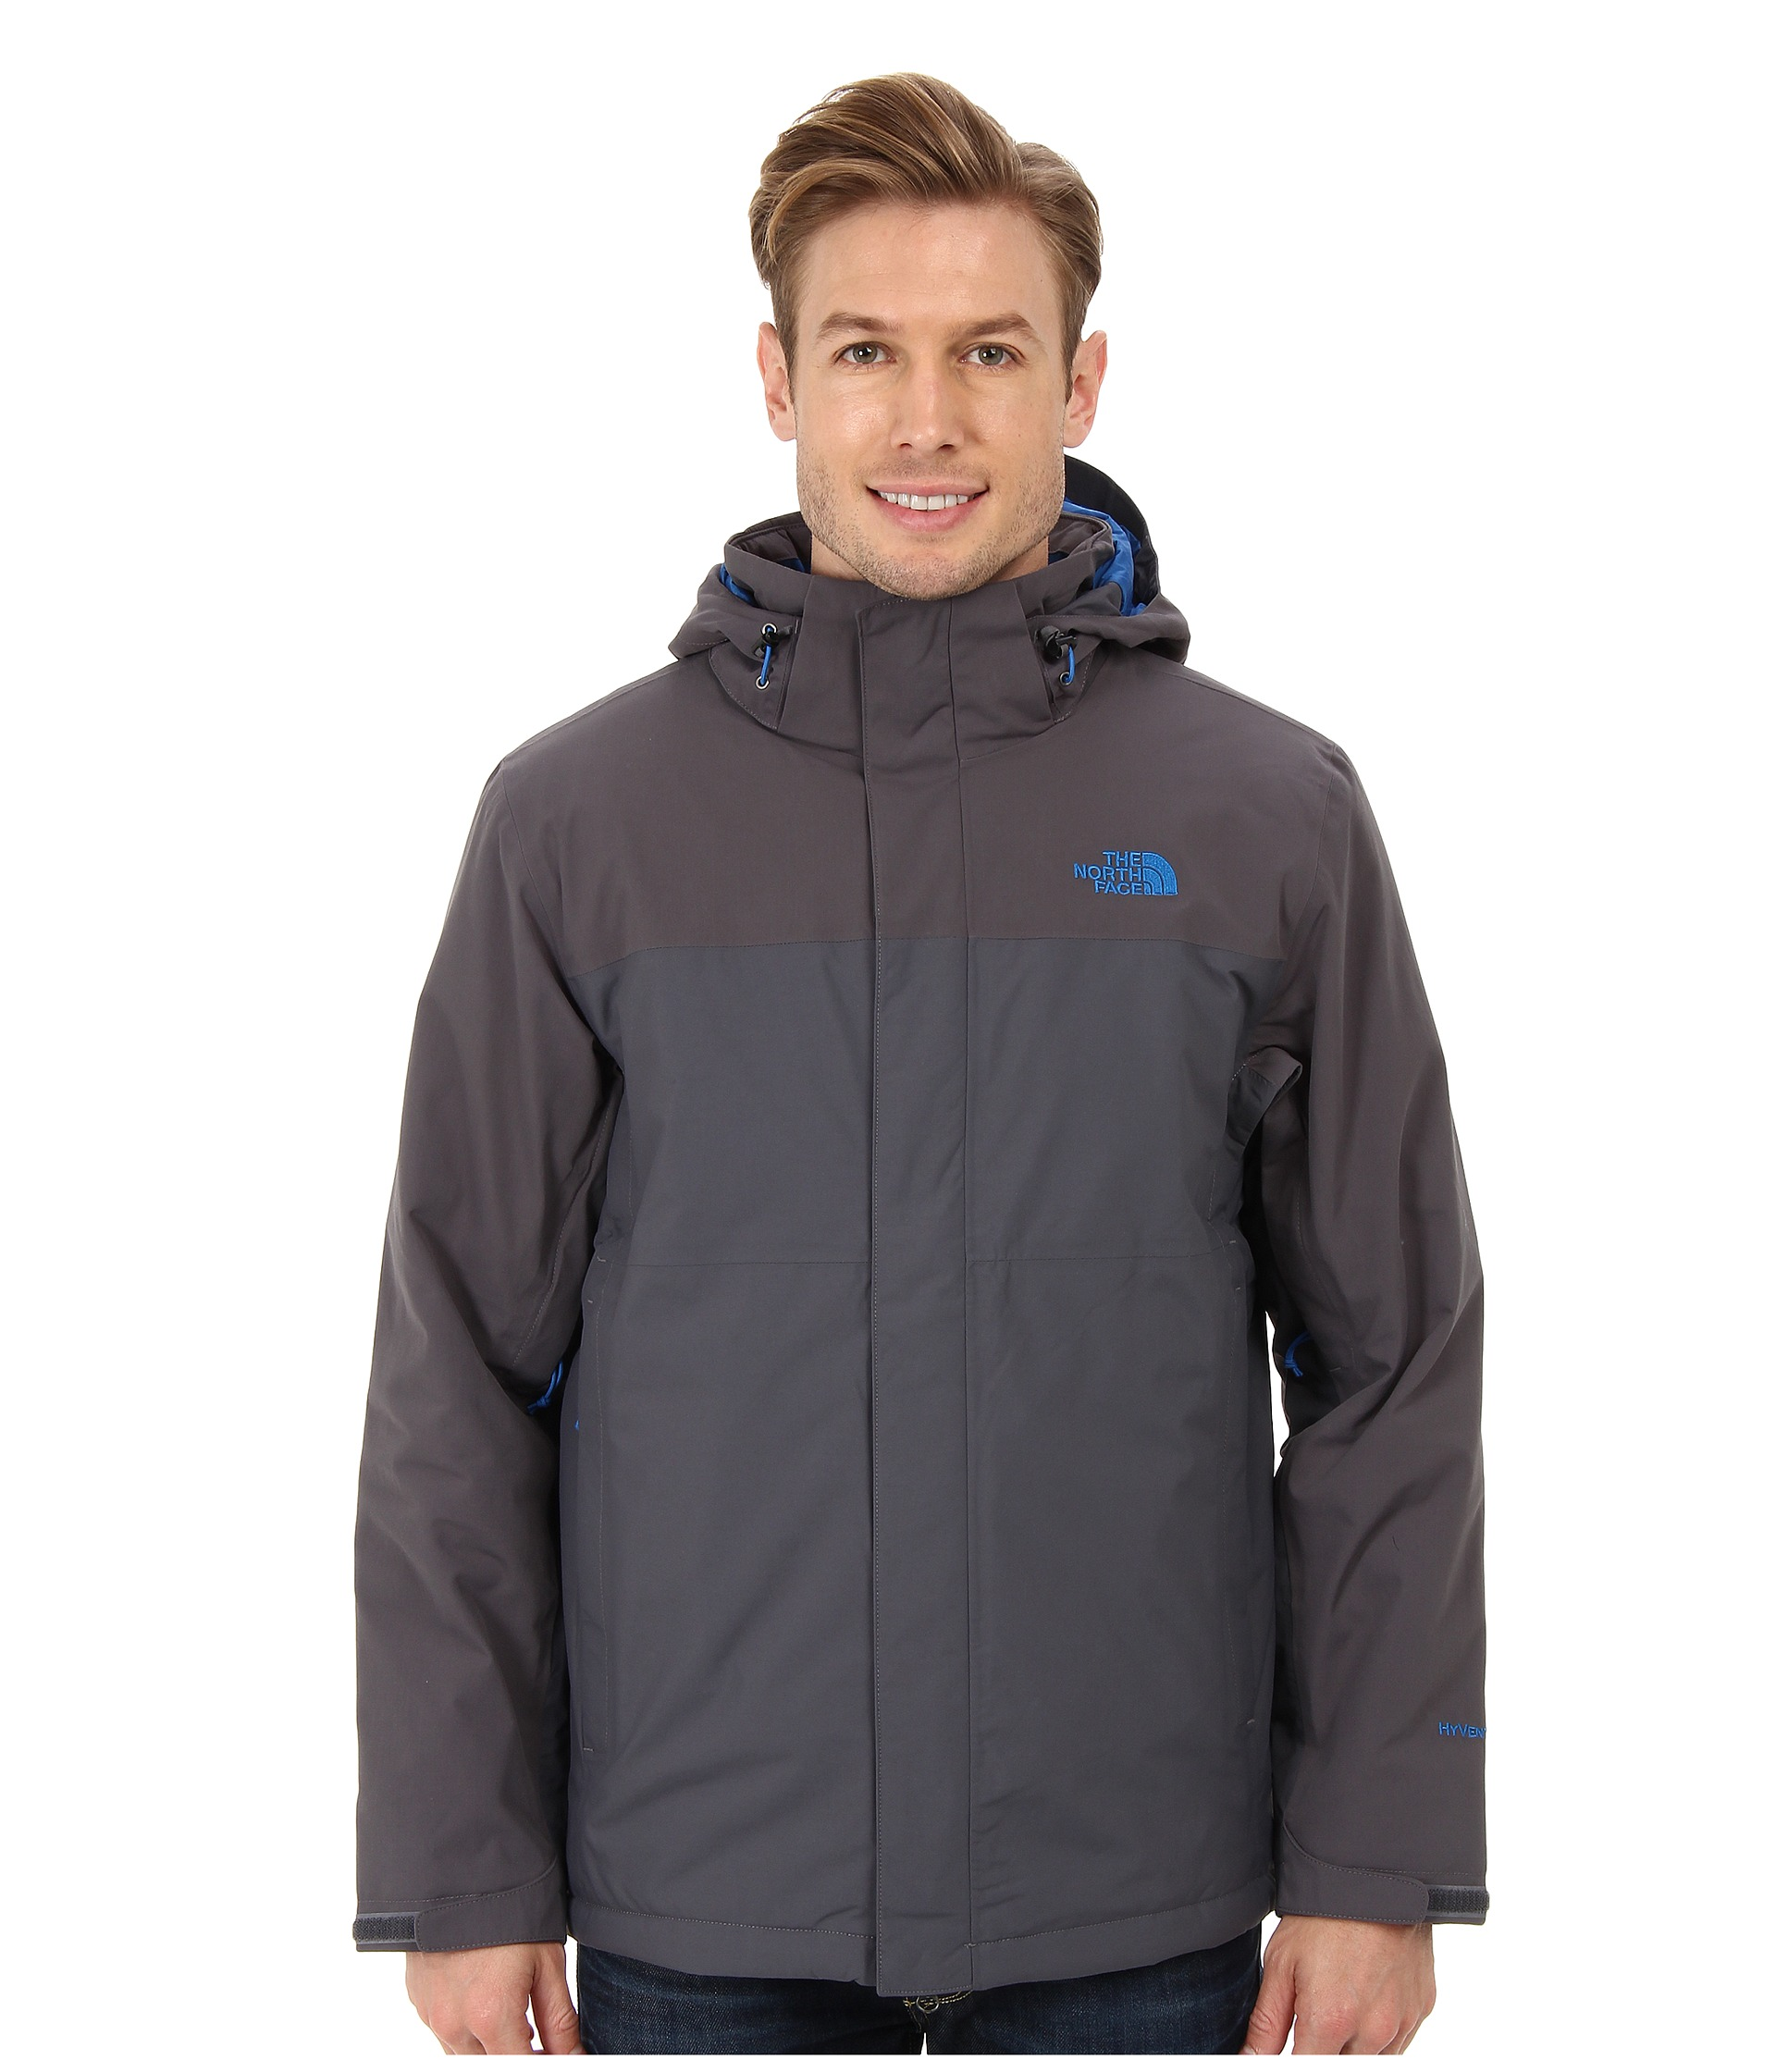 North Face Inlux Insulated Jacket Sale $72.00 - BuyVia